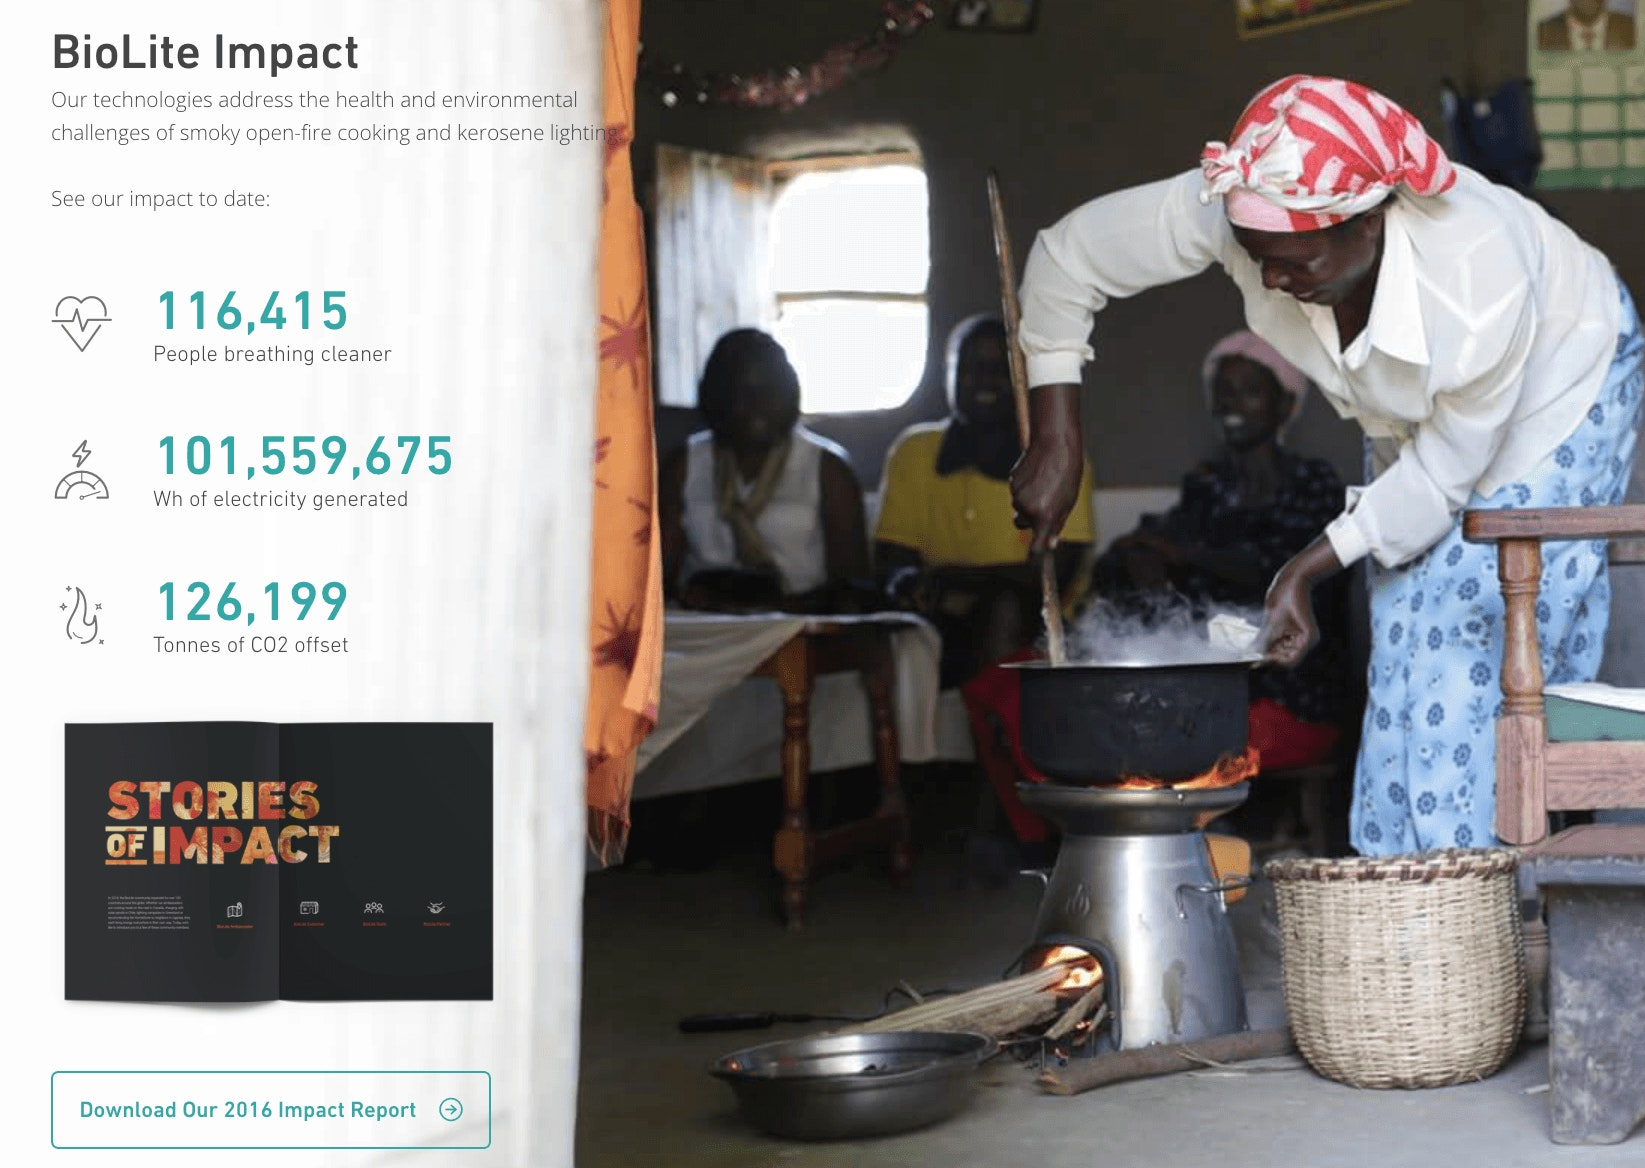 Statistics and content about BioLite's social responsibility program